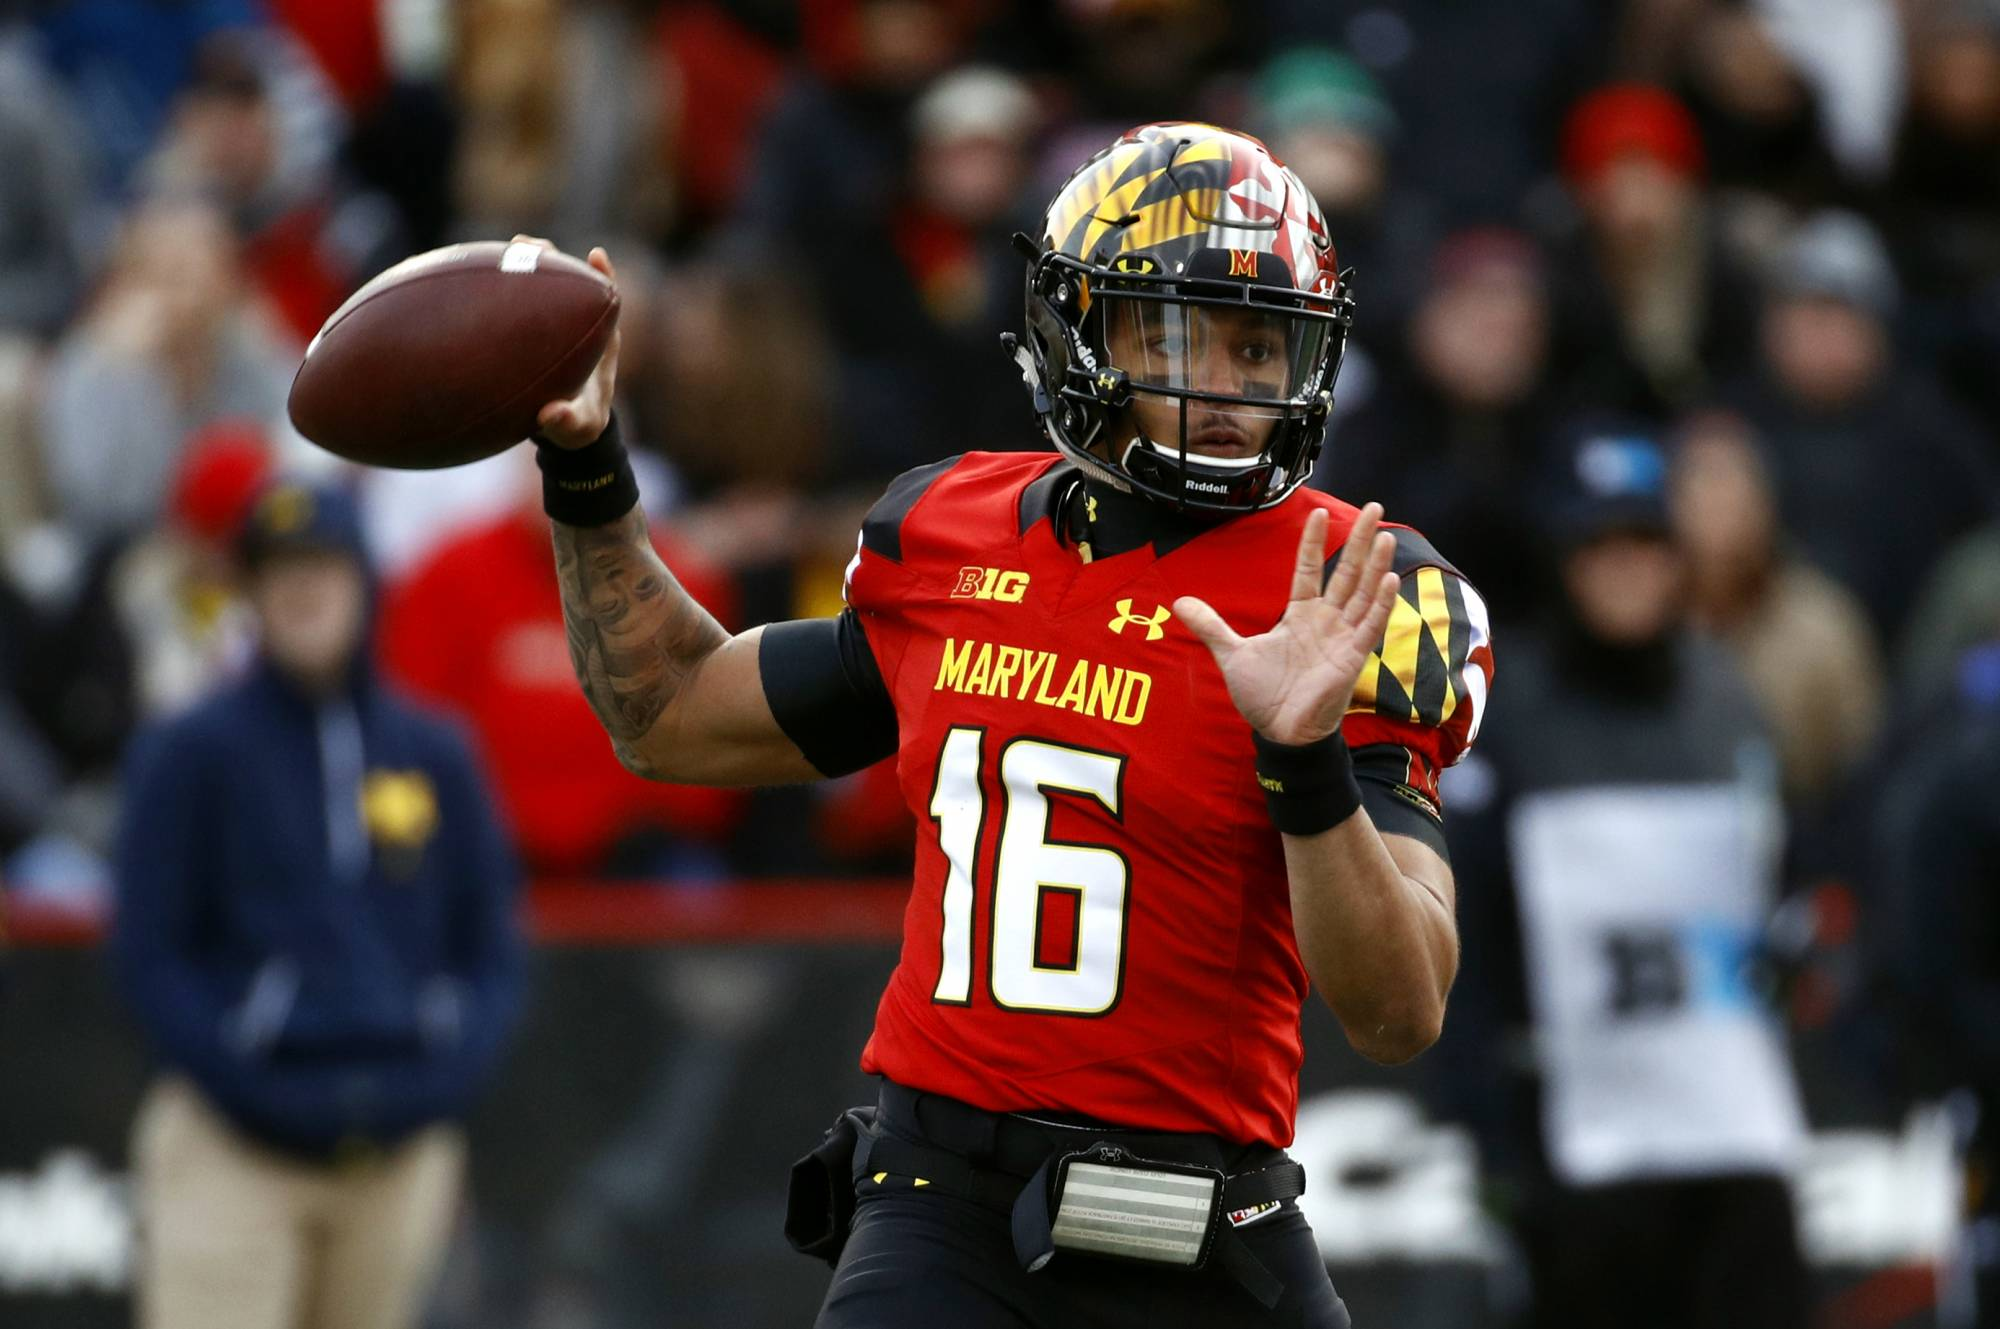 maryland football - photo #12